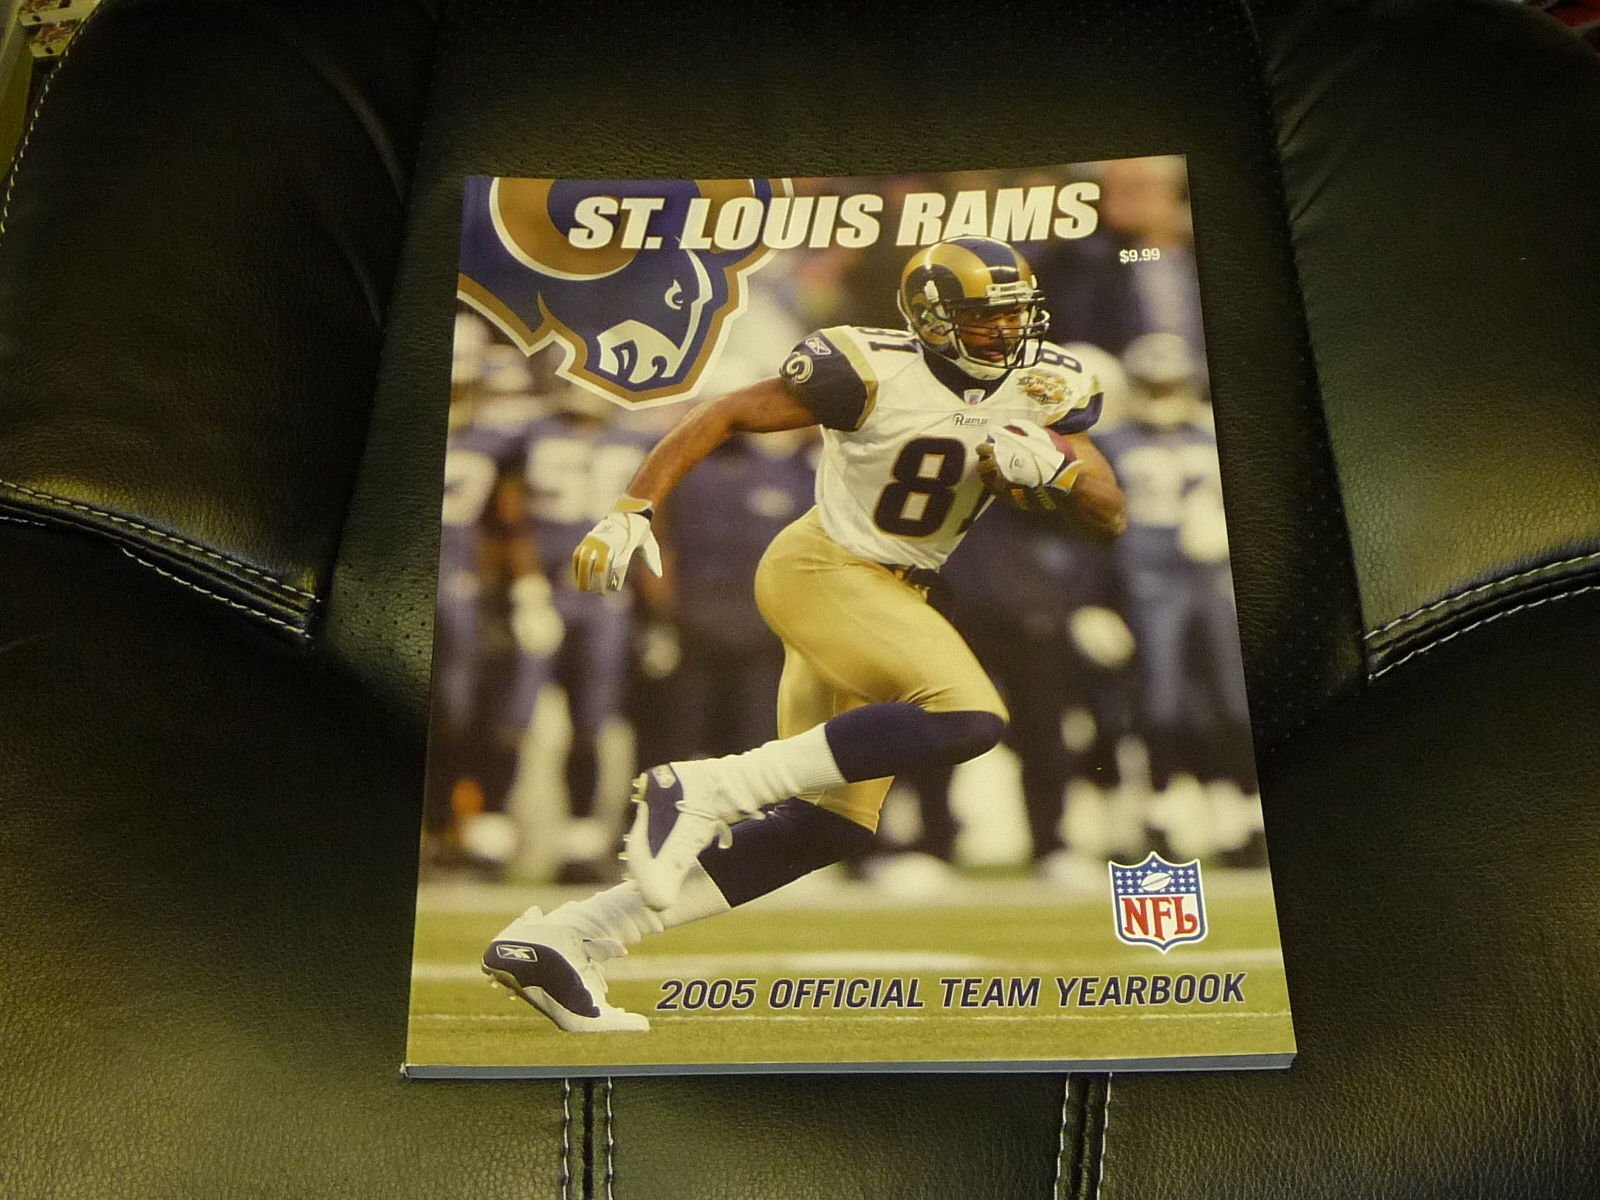 2005 ST. LOUIS RAMS FOOTBALL YEARBOOK NEAR MINT TORRY HOLT COVER